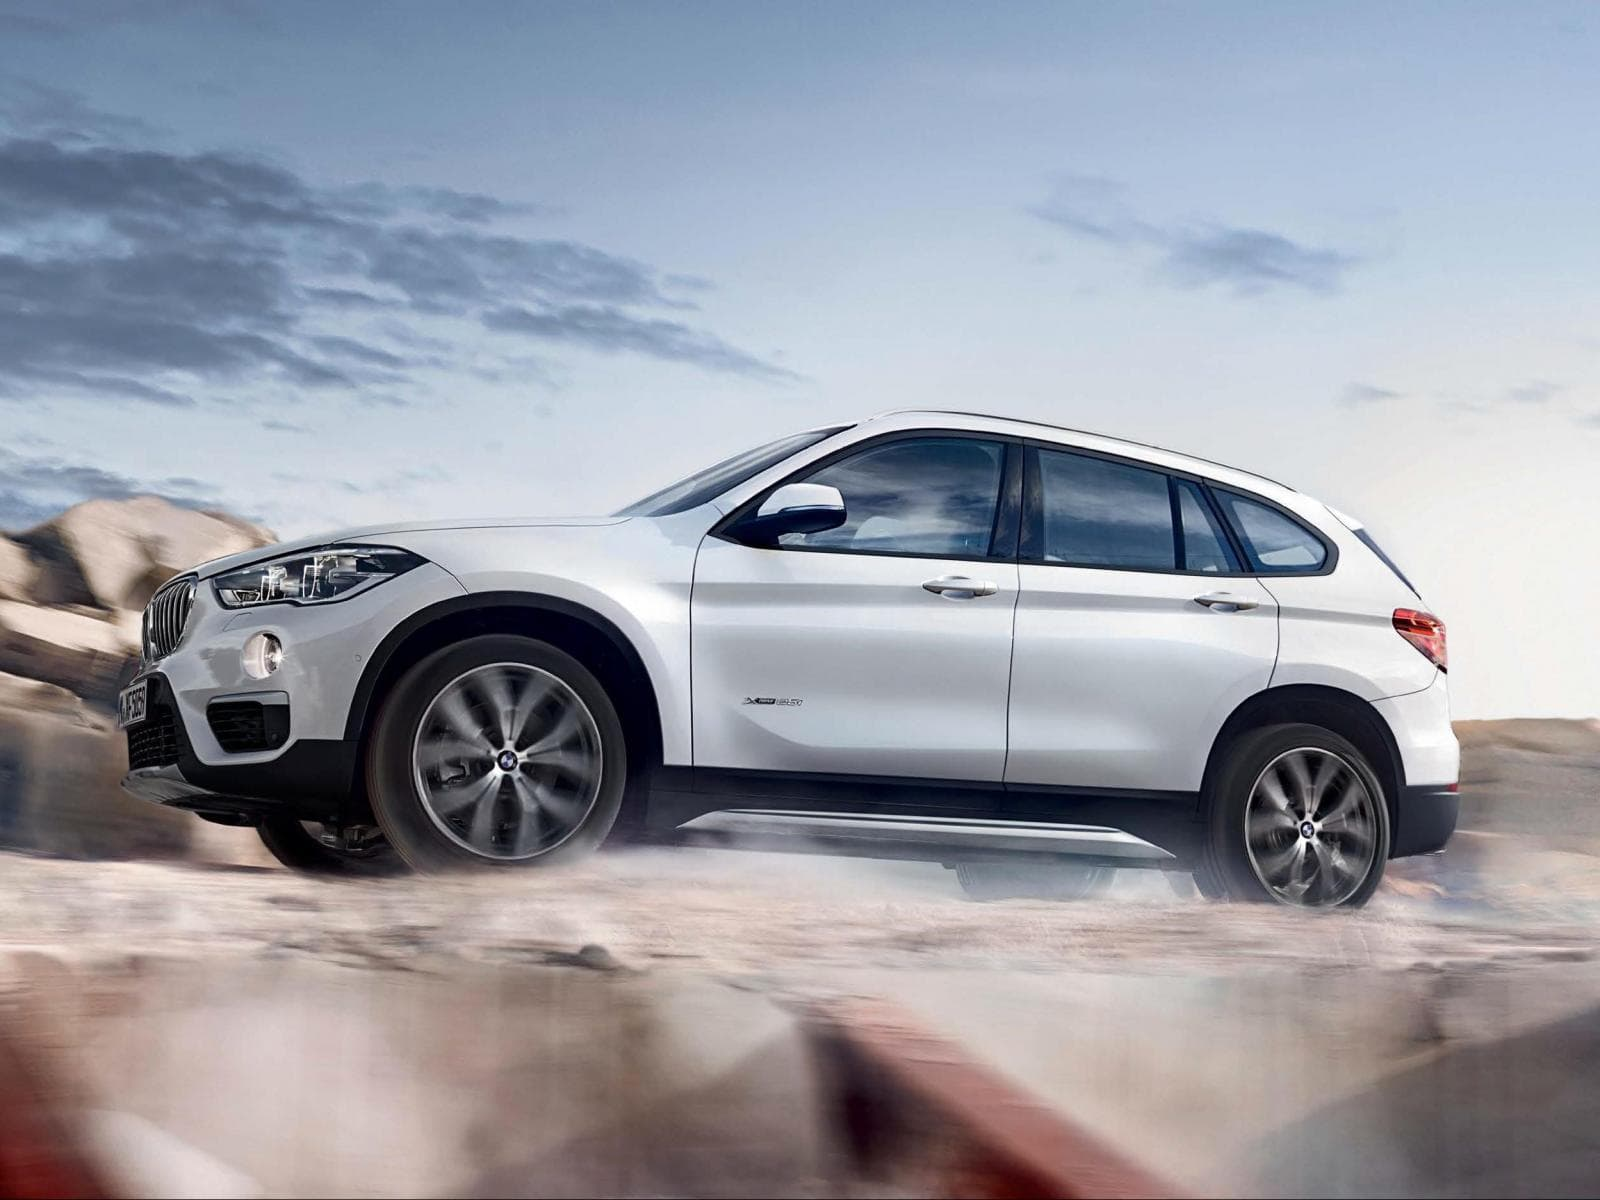 Bmw X1 Wallpapers Free Download